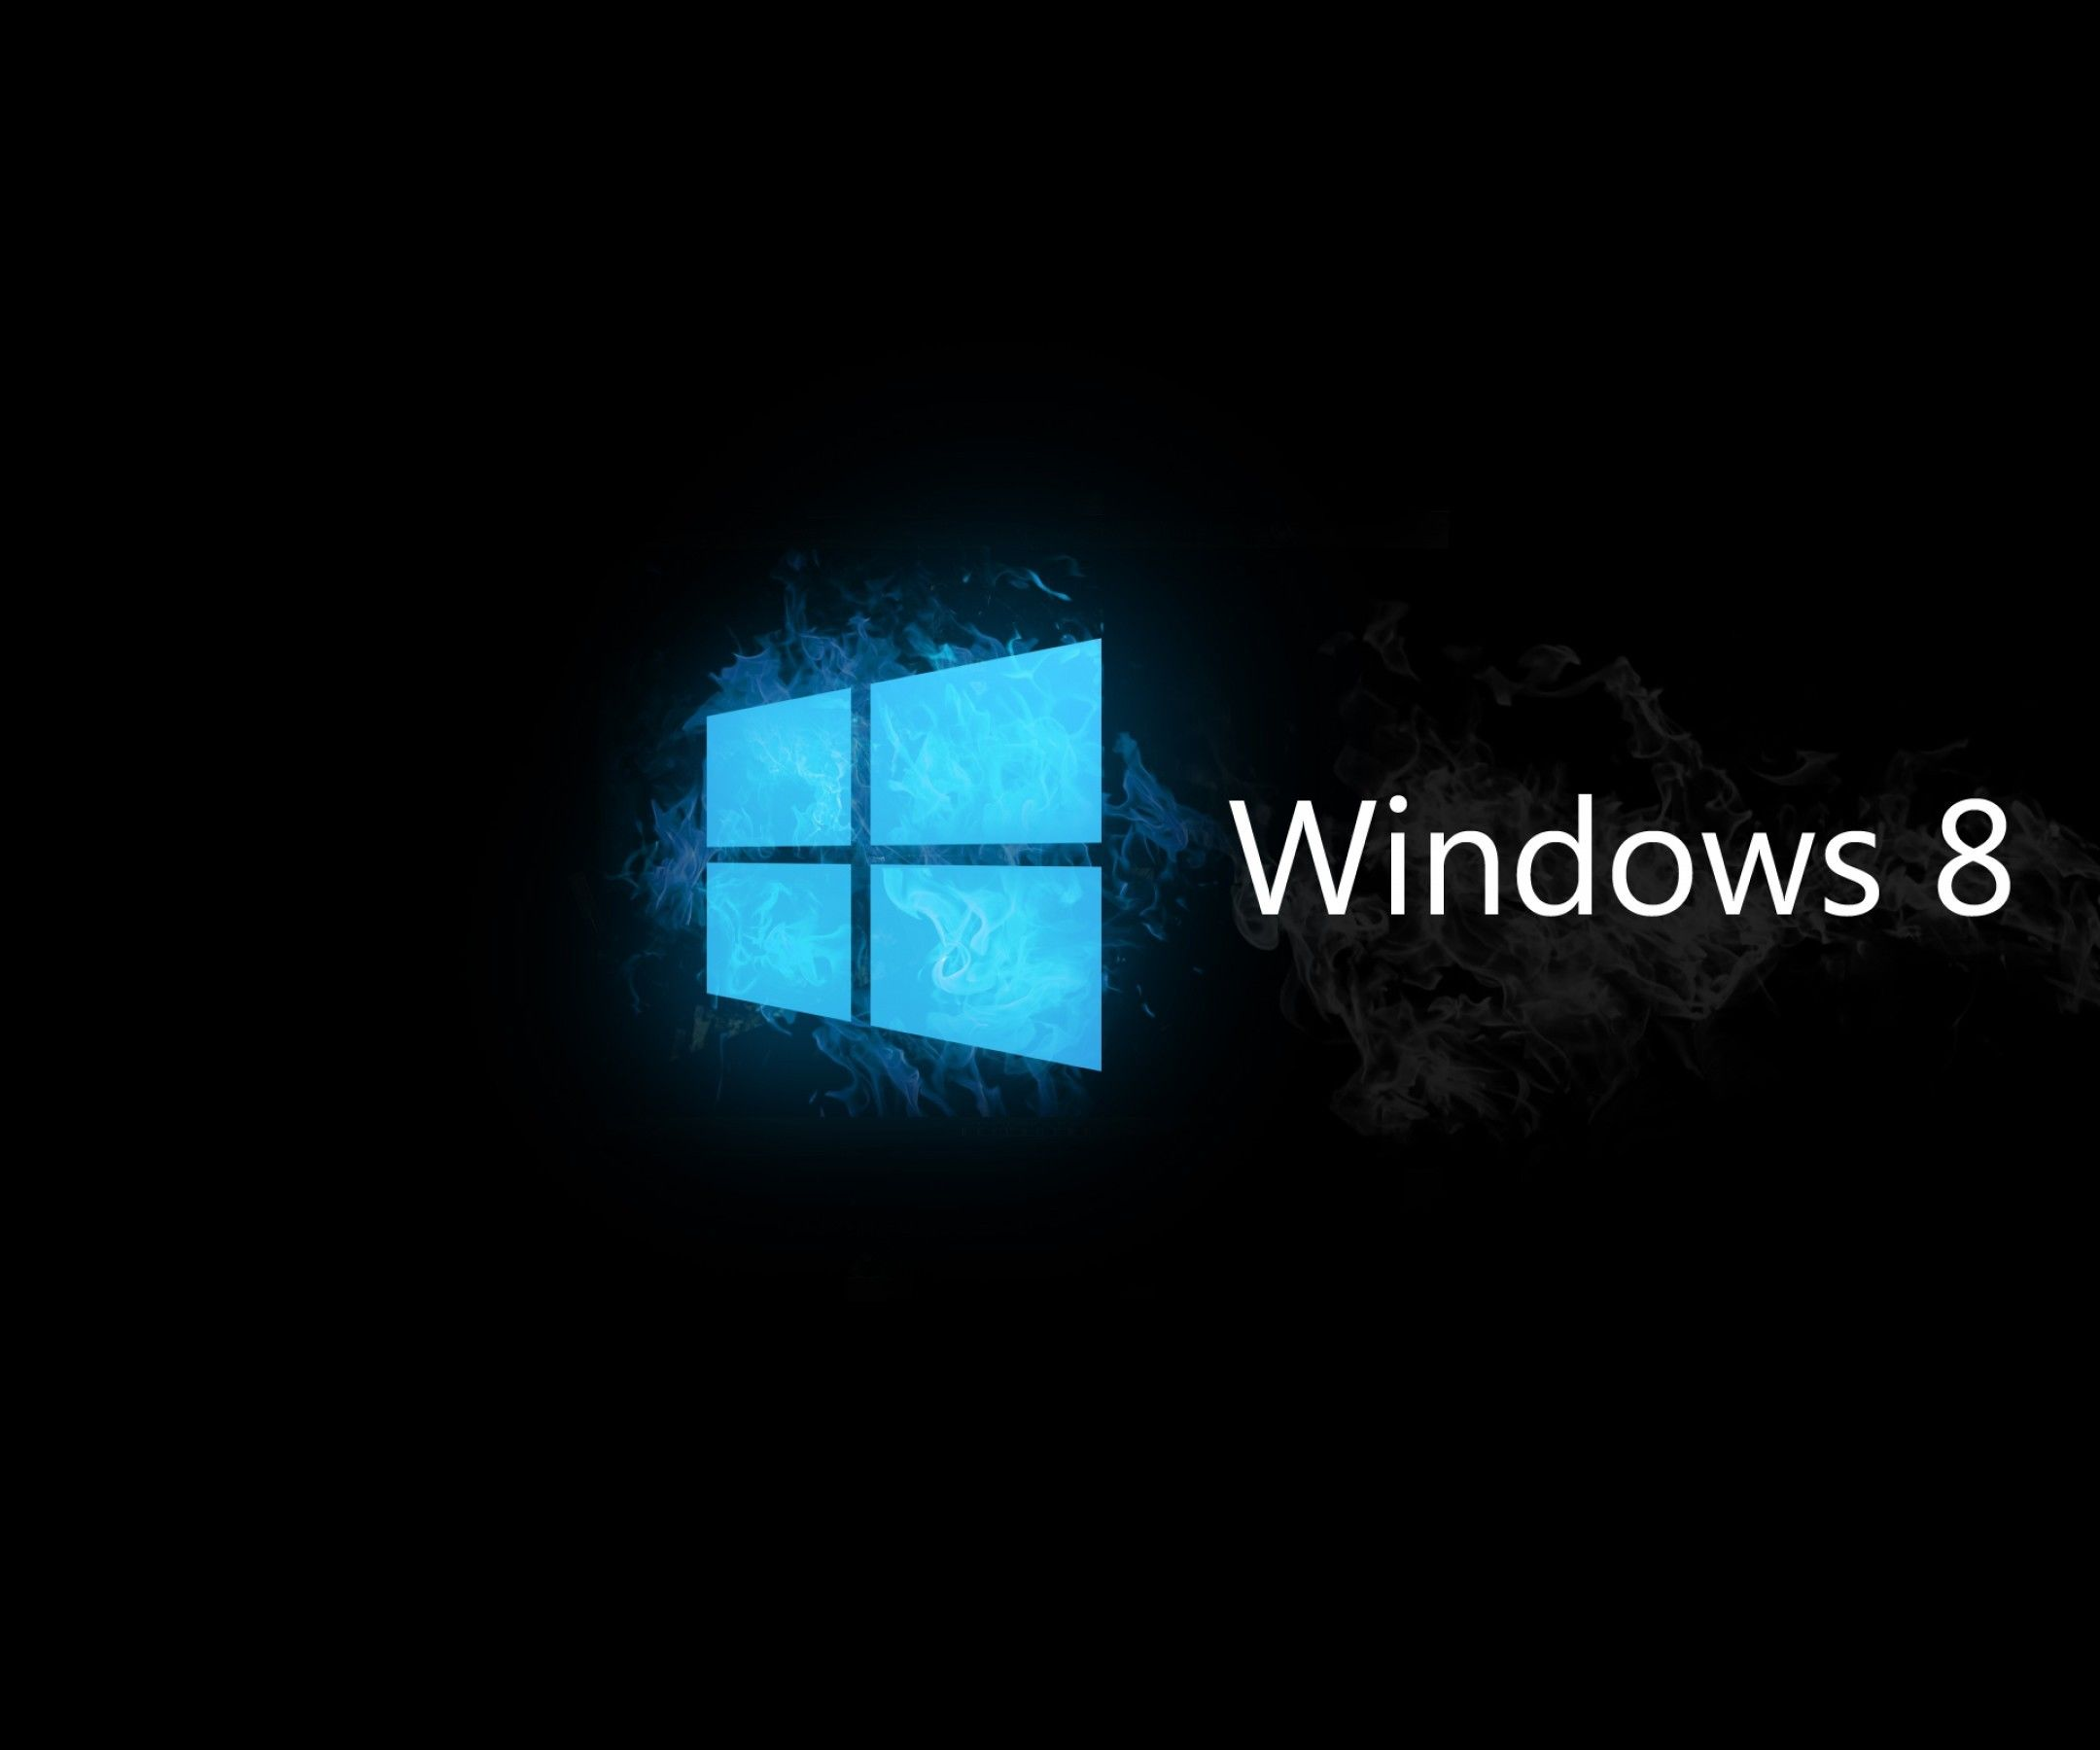 How to Change or Customize Windows 7/8 Boot Screen